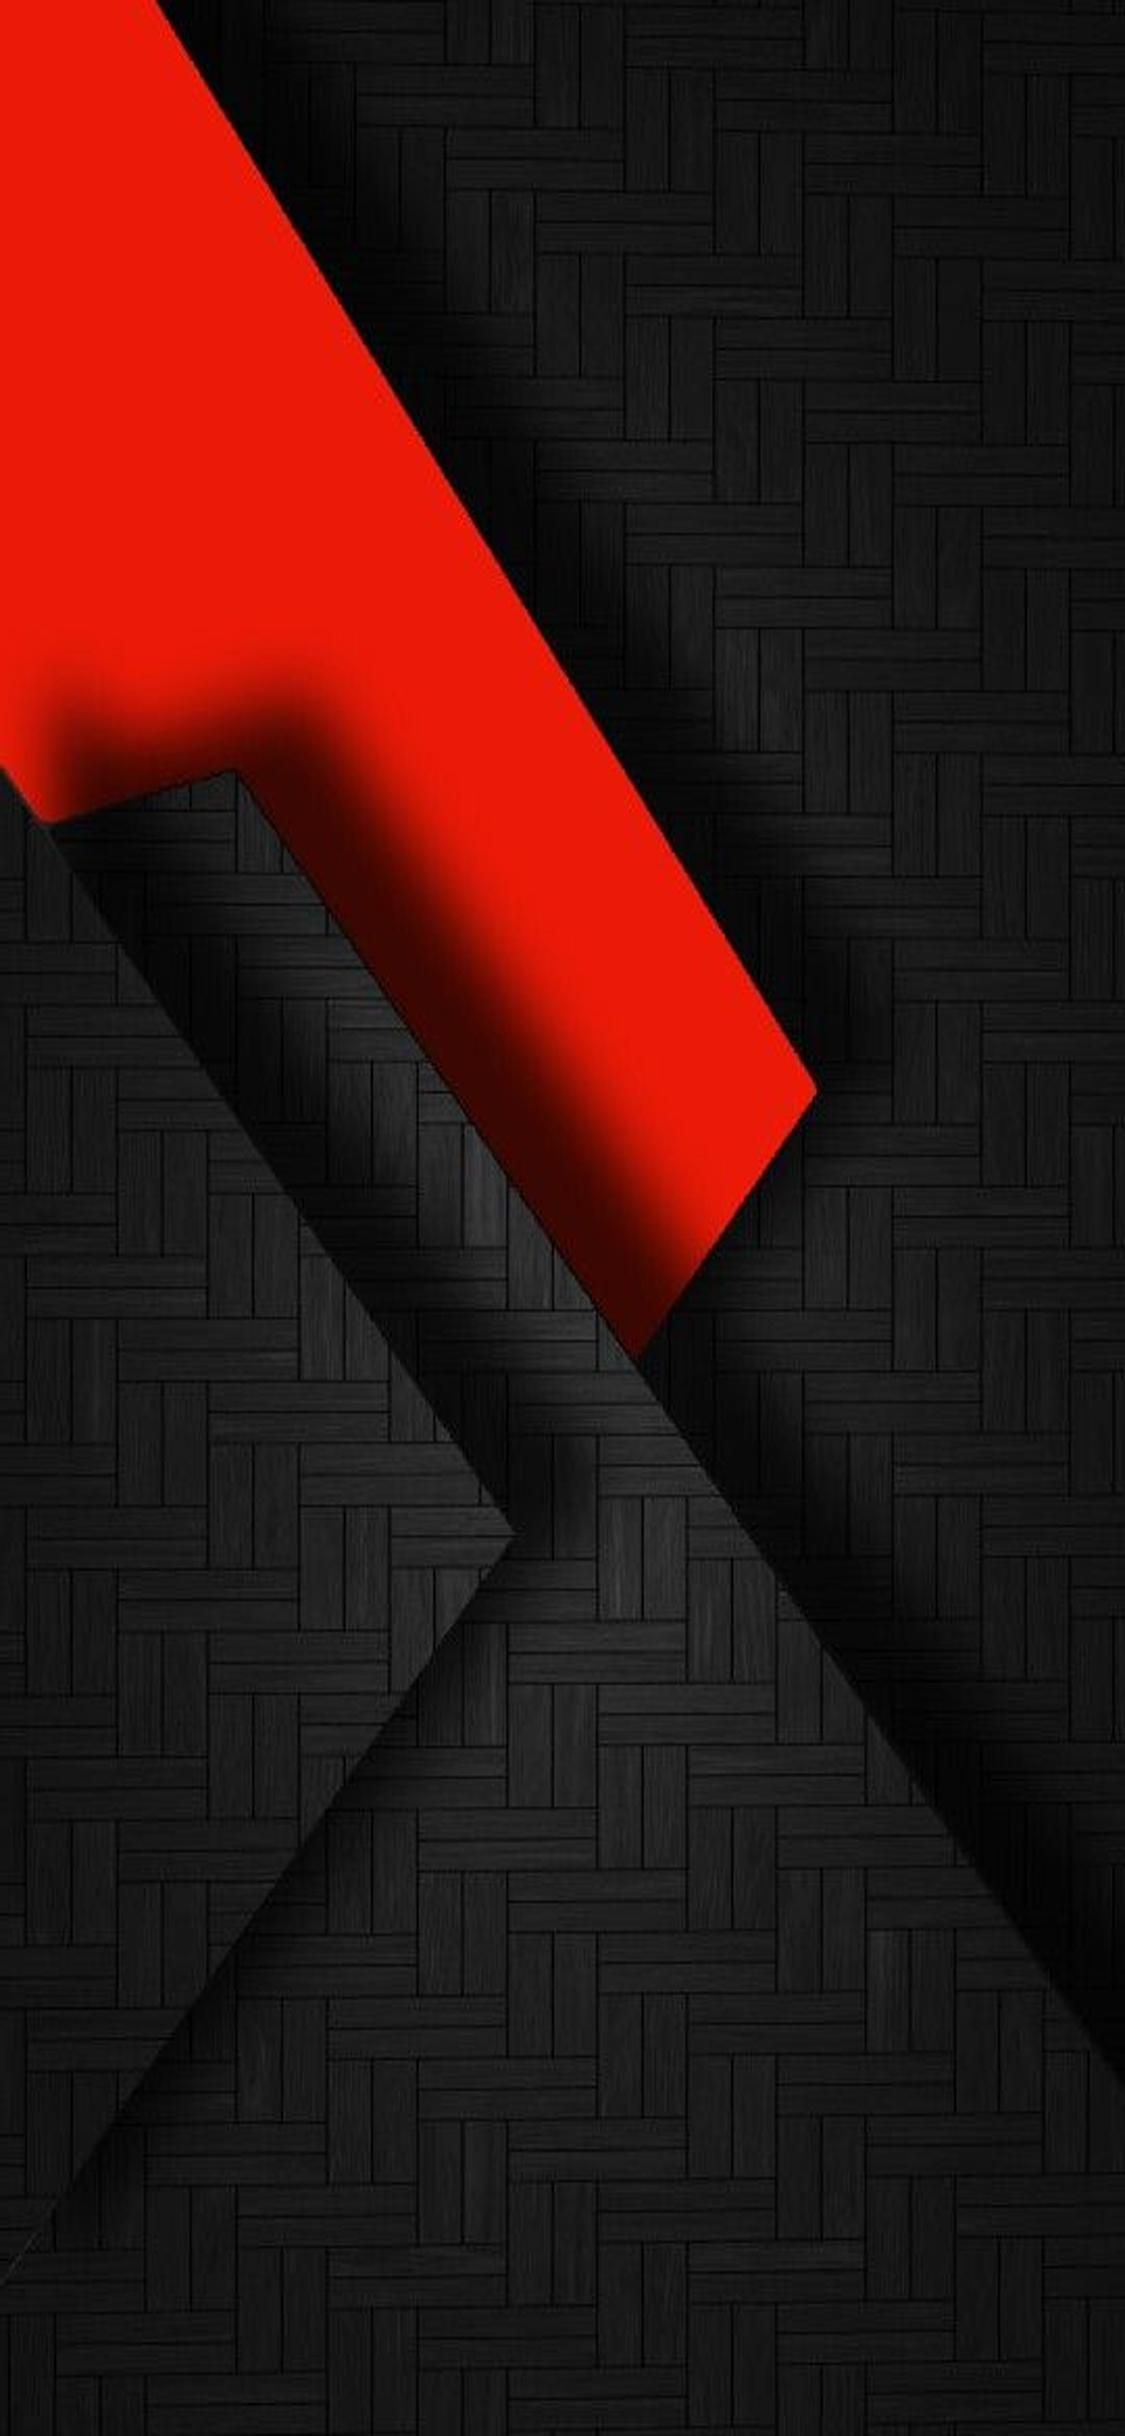 Iphone X Wallpaper Red And Black